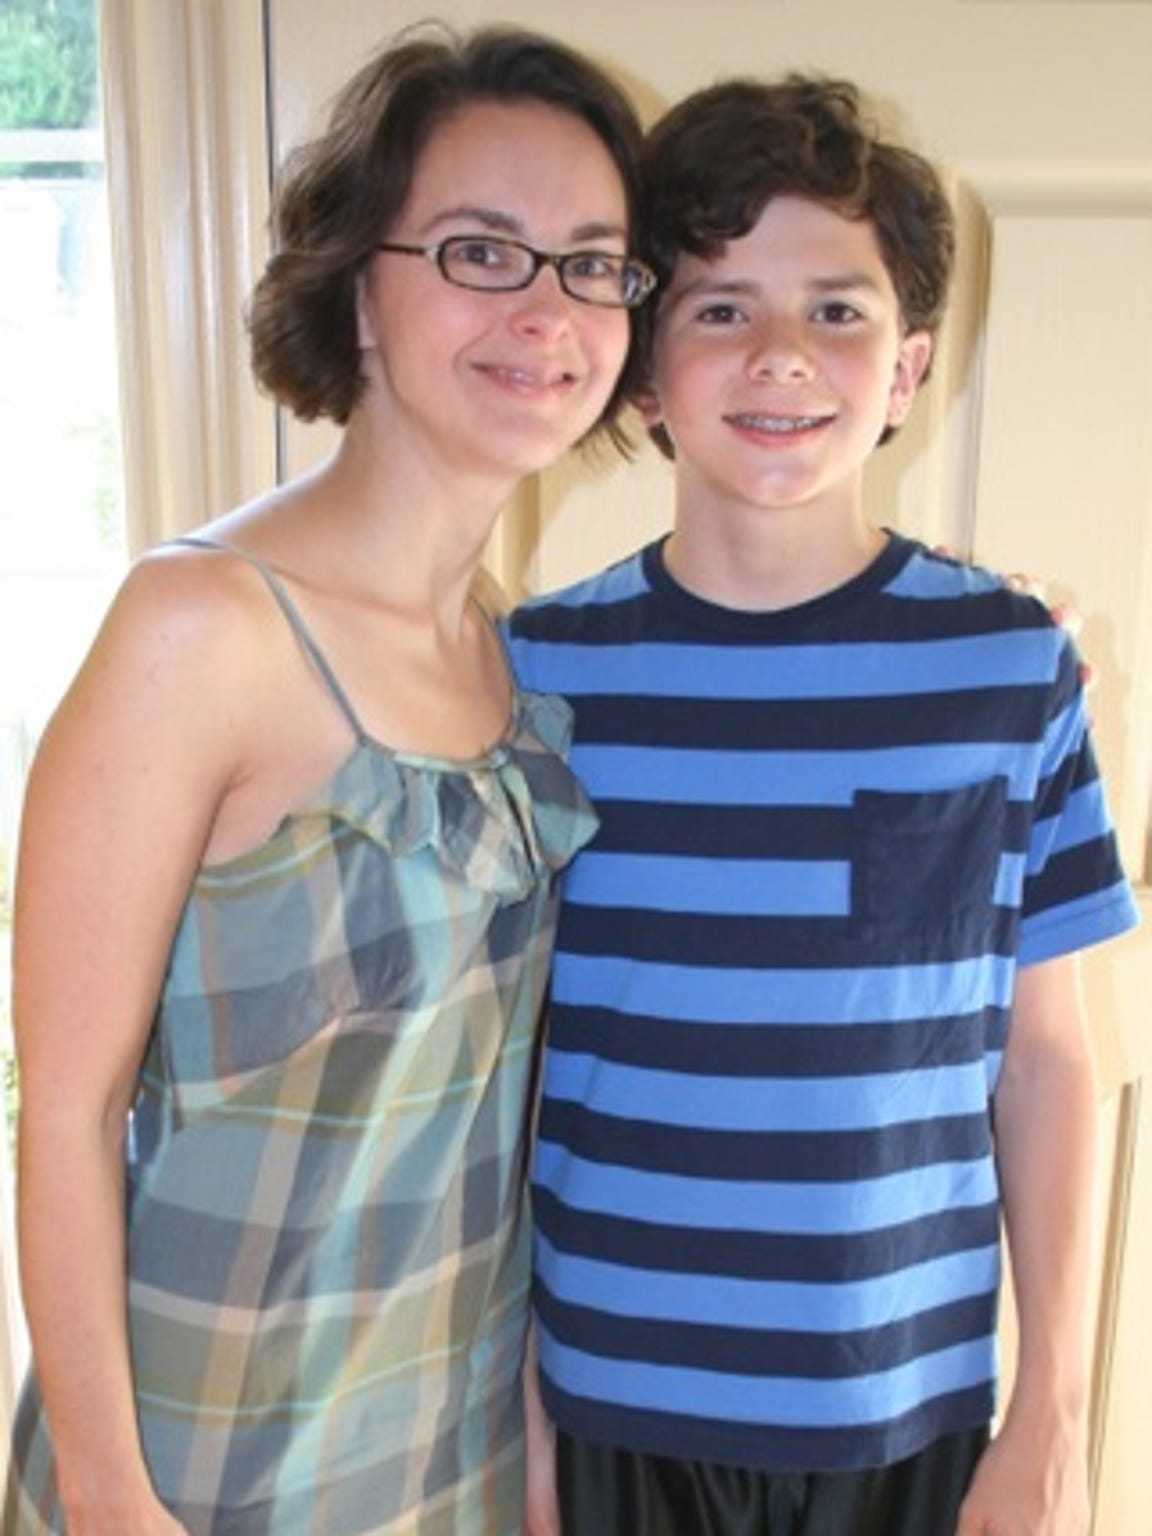 Amy Mackin at home with her older child, Andrew, age